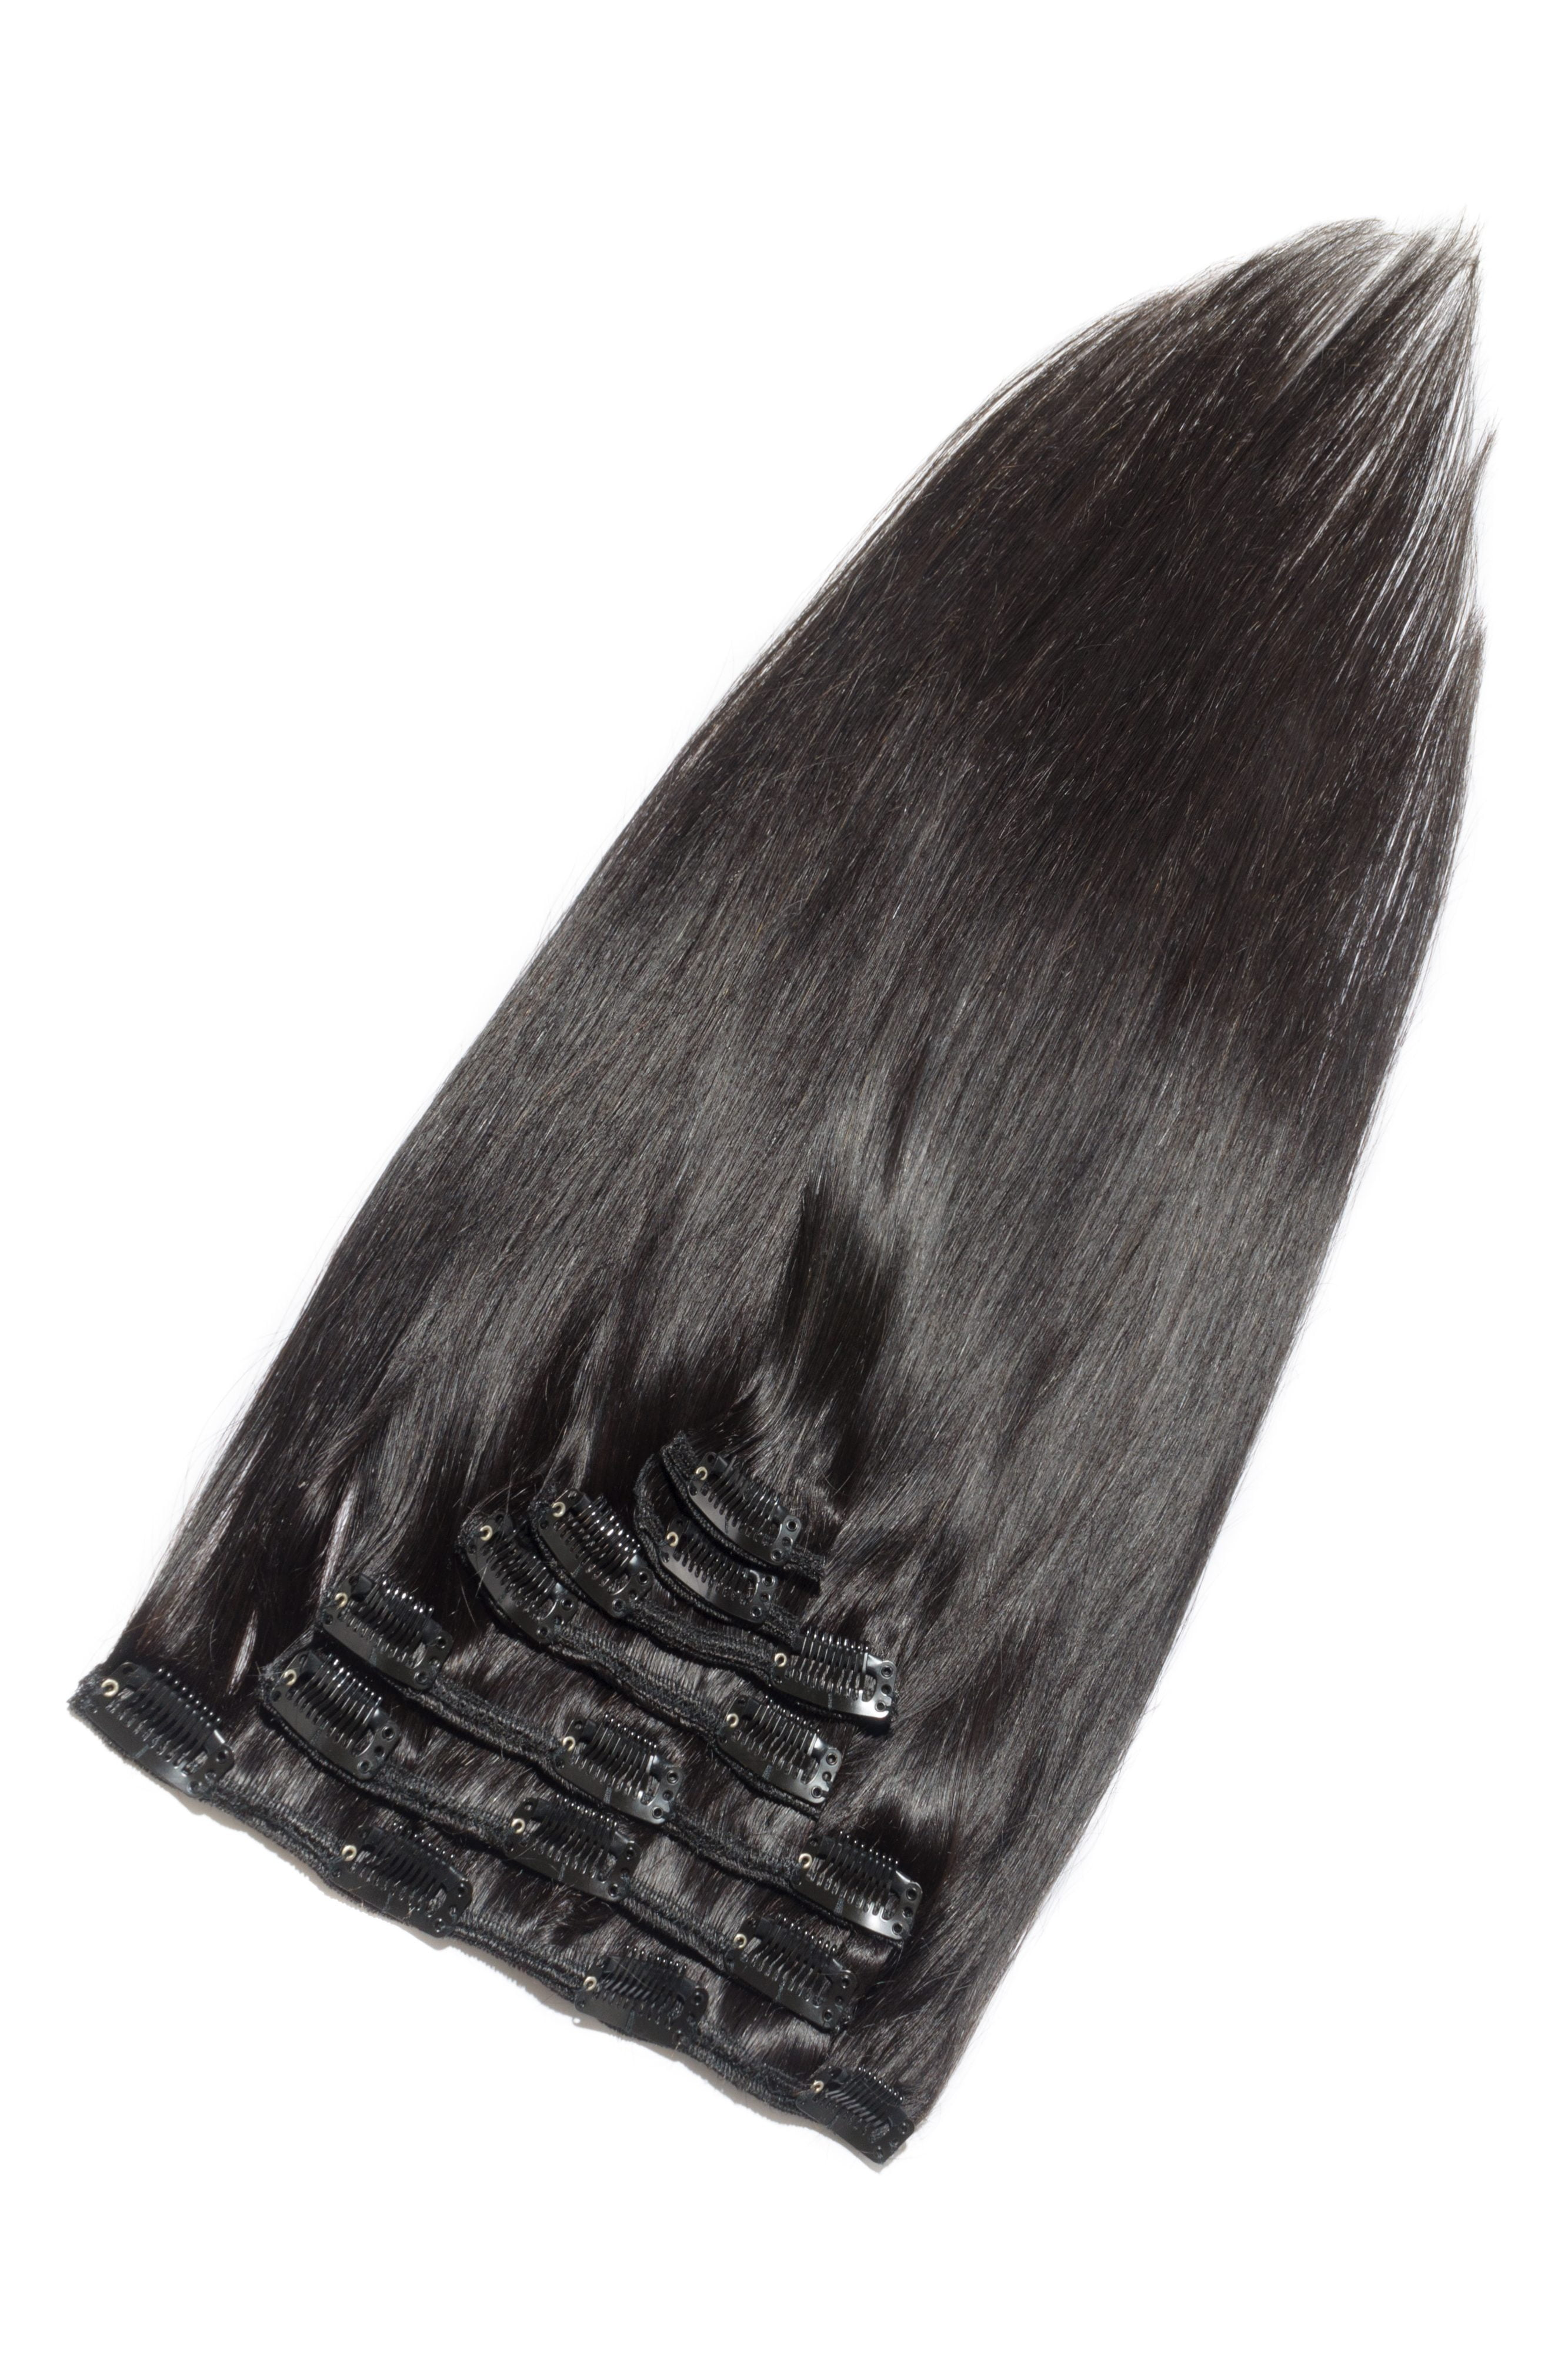 Clip on hairextensions virgin hair sort-brun